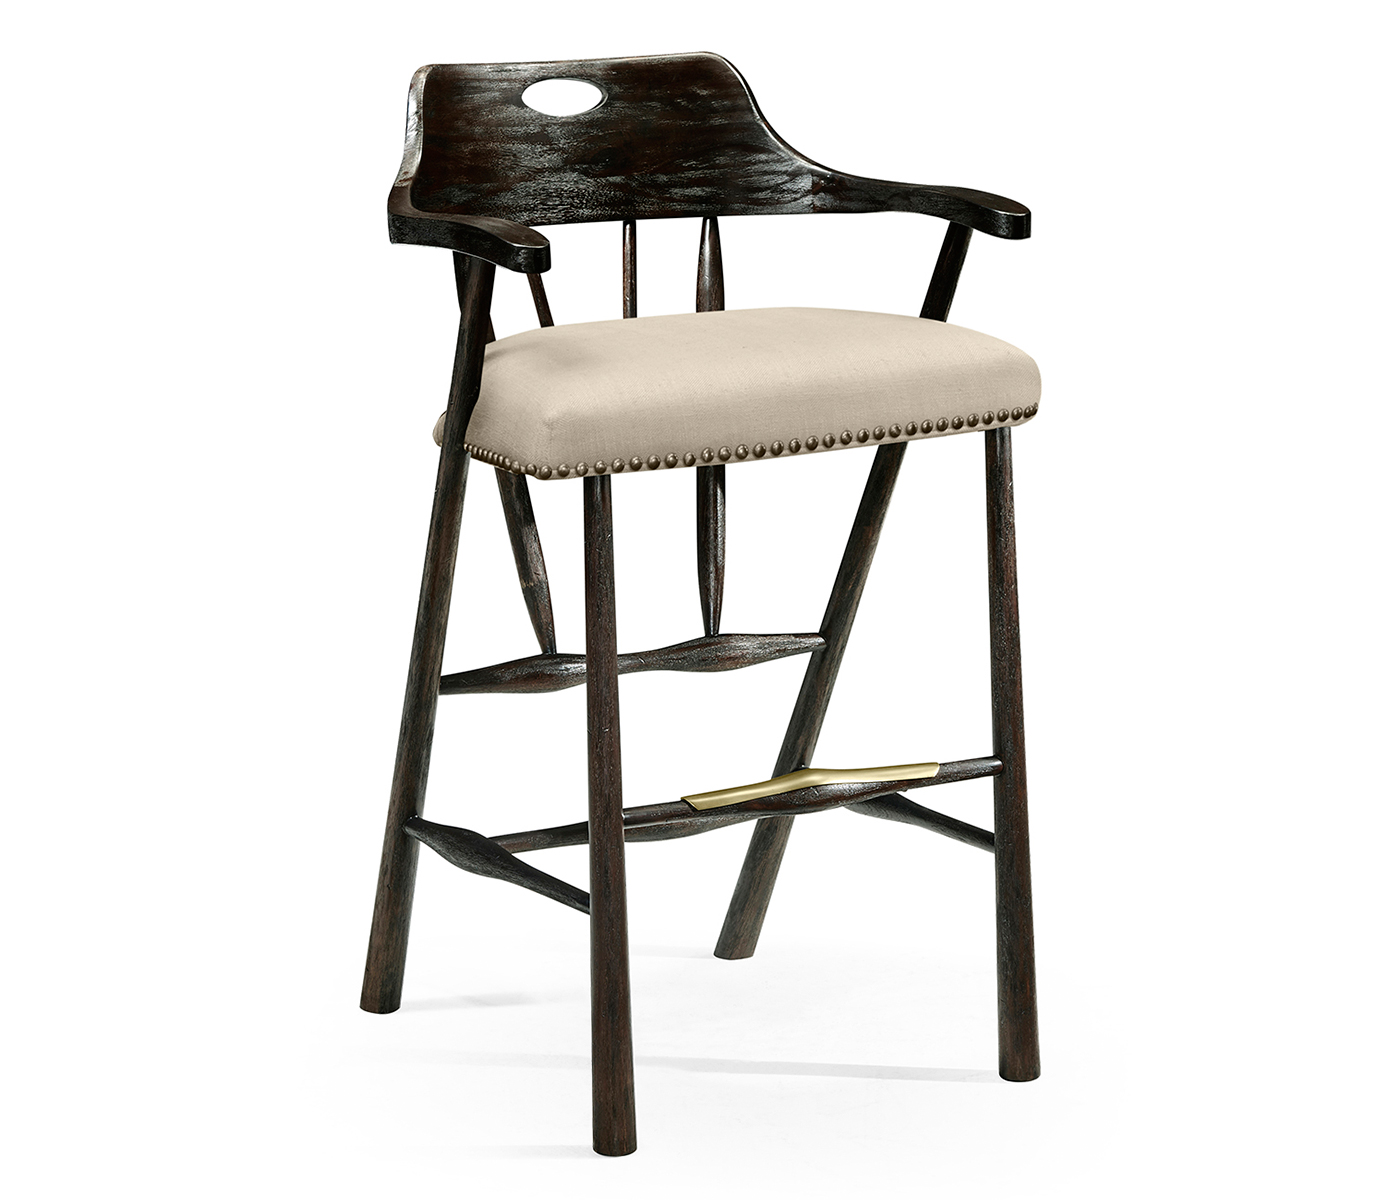 Phenomenal Smokers Style Dark Ale Bar Stool Upholstered In Mazo Alphanode Cool Chair Designs And Ideas Alphanodeonline